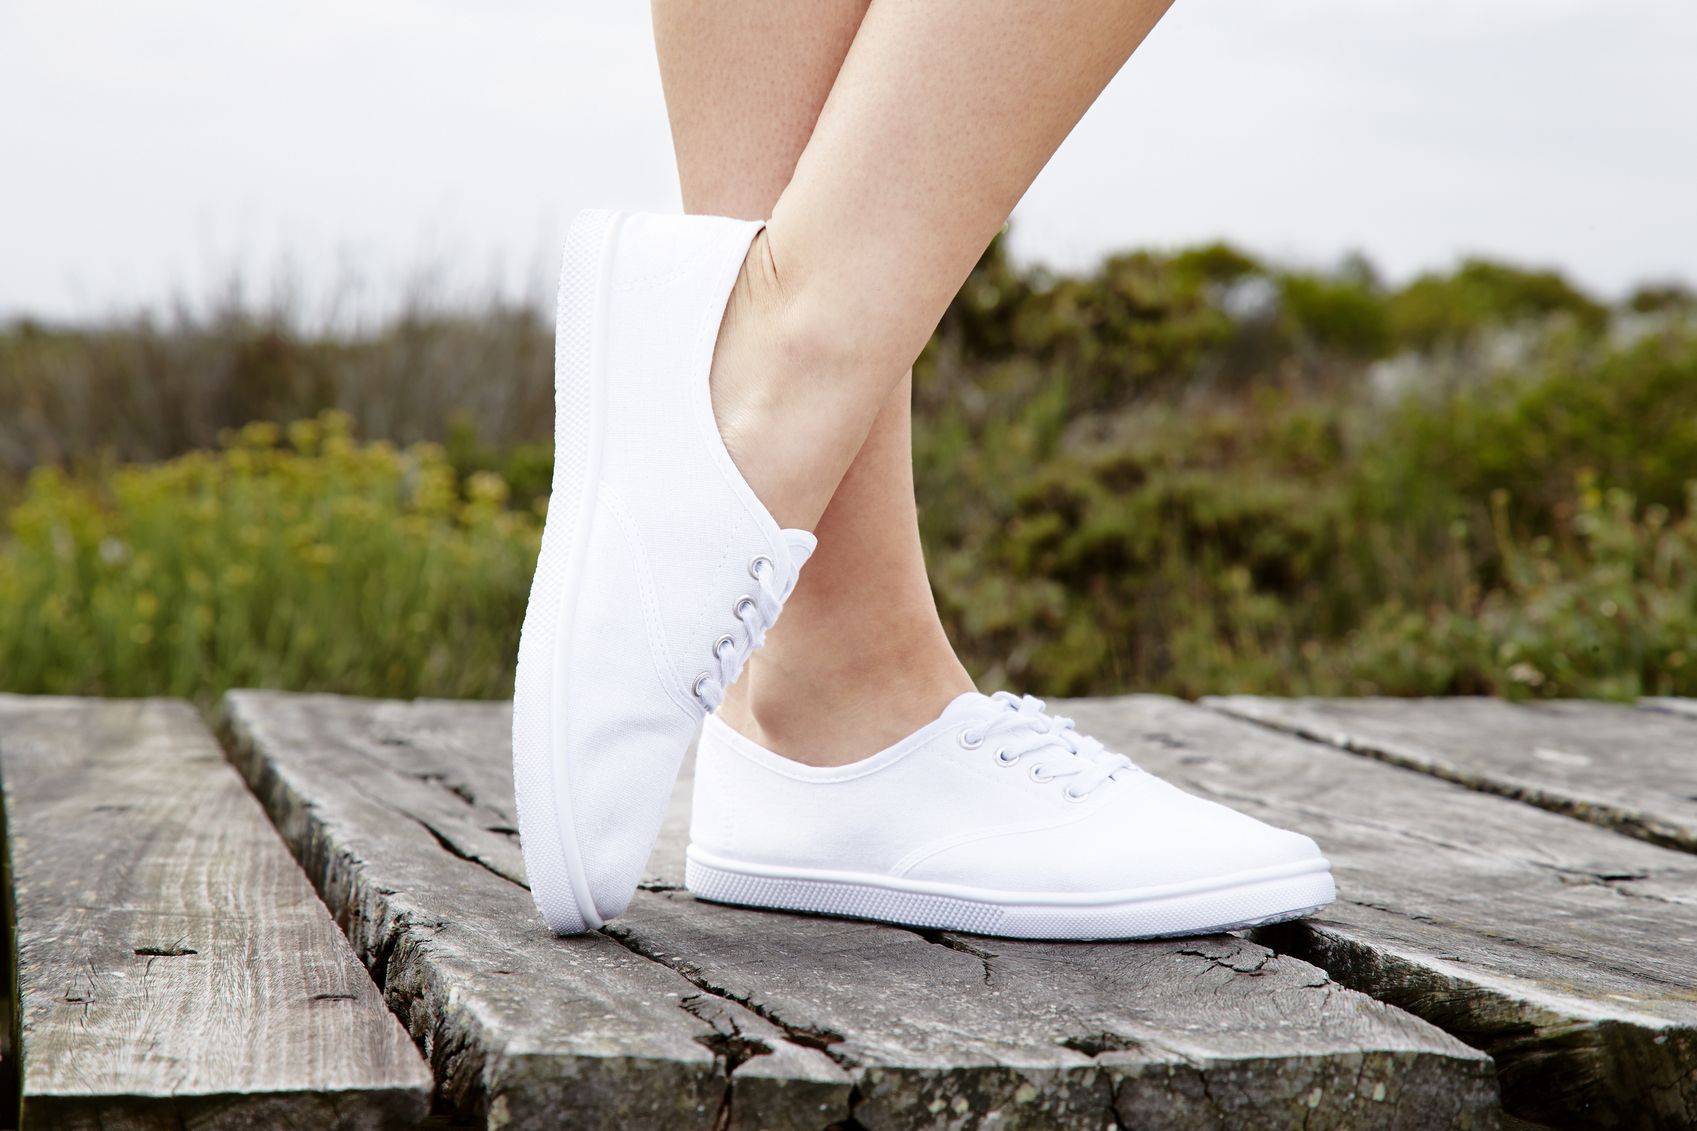 Comment nettoyer des baskets blanches sales? | Baskets blanches ...